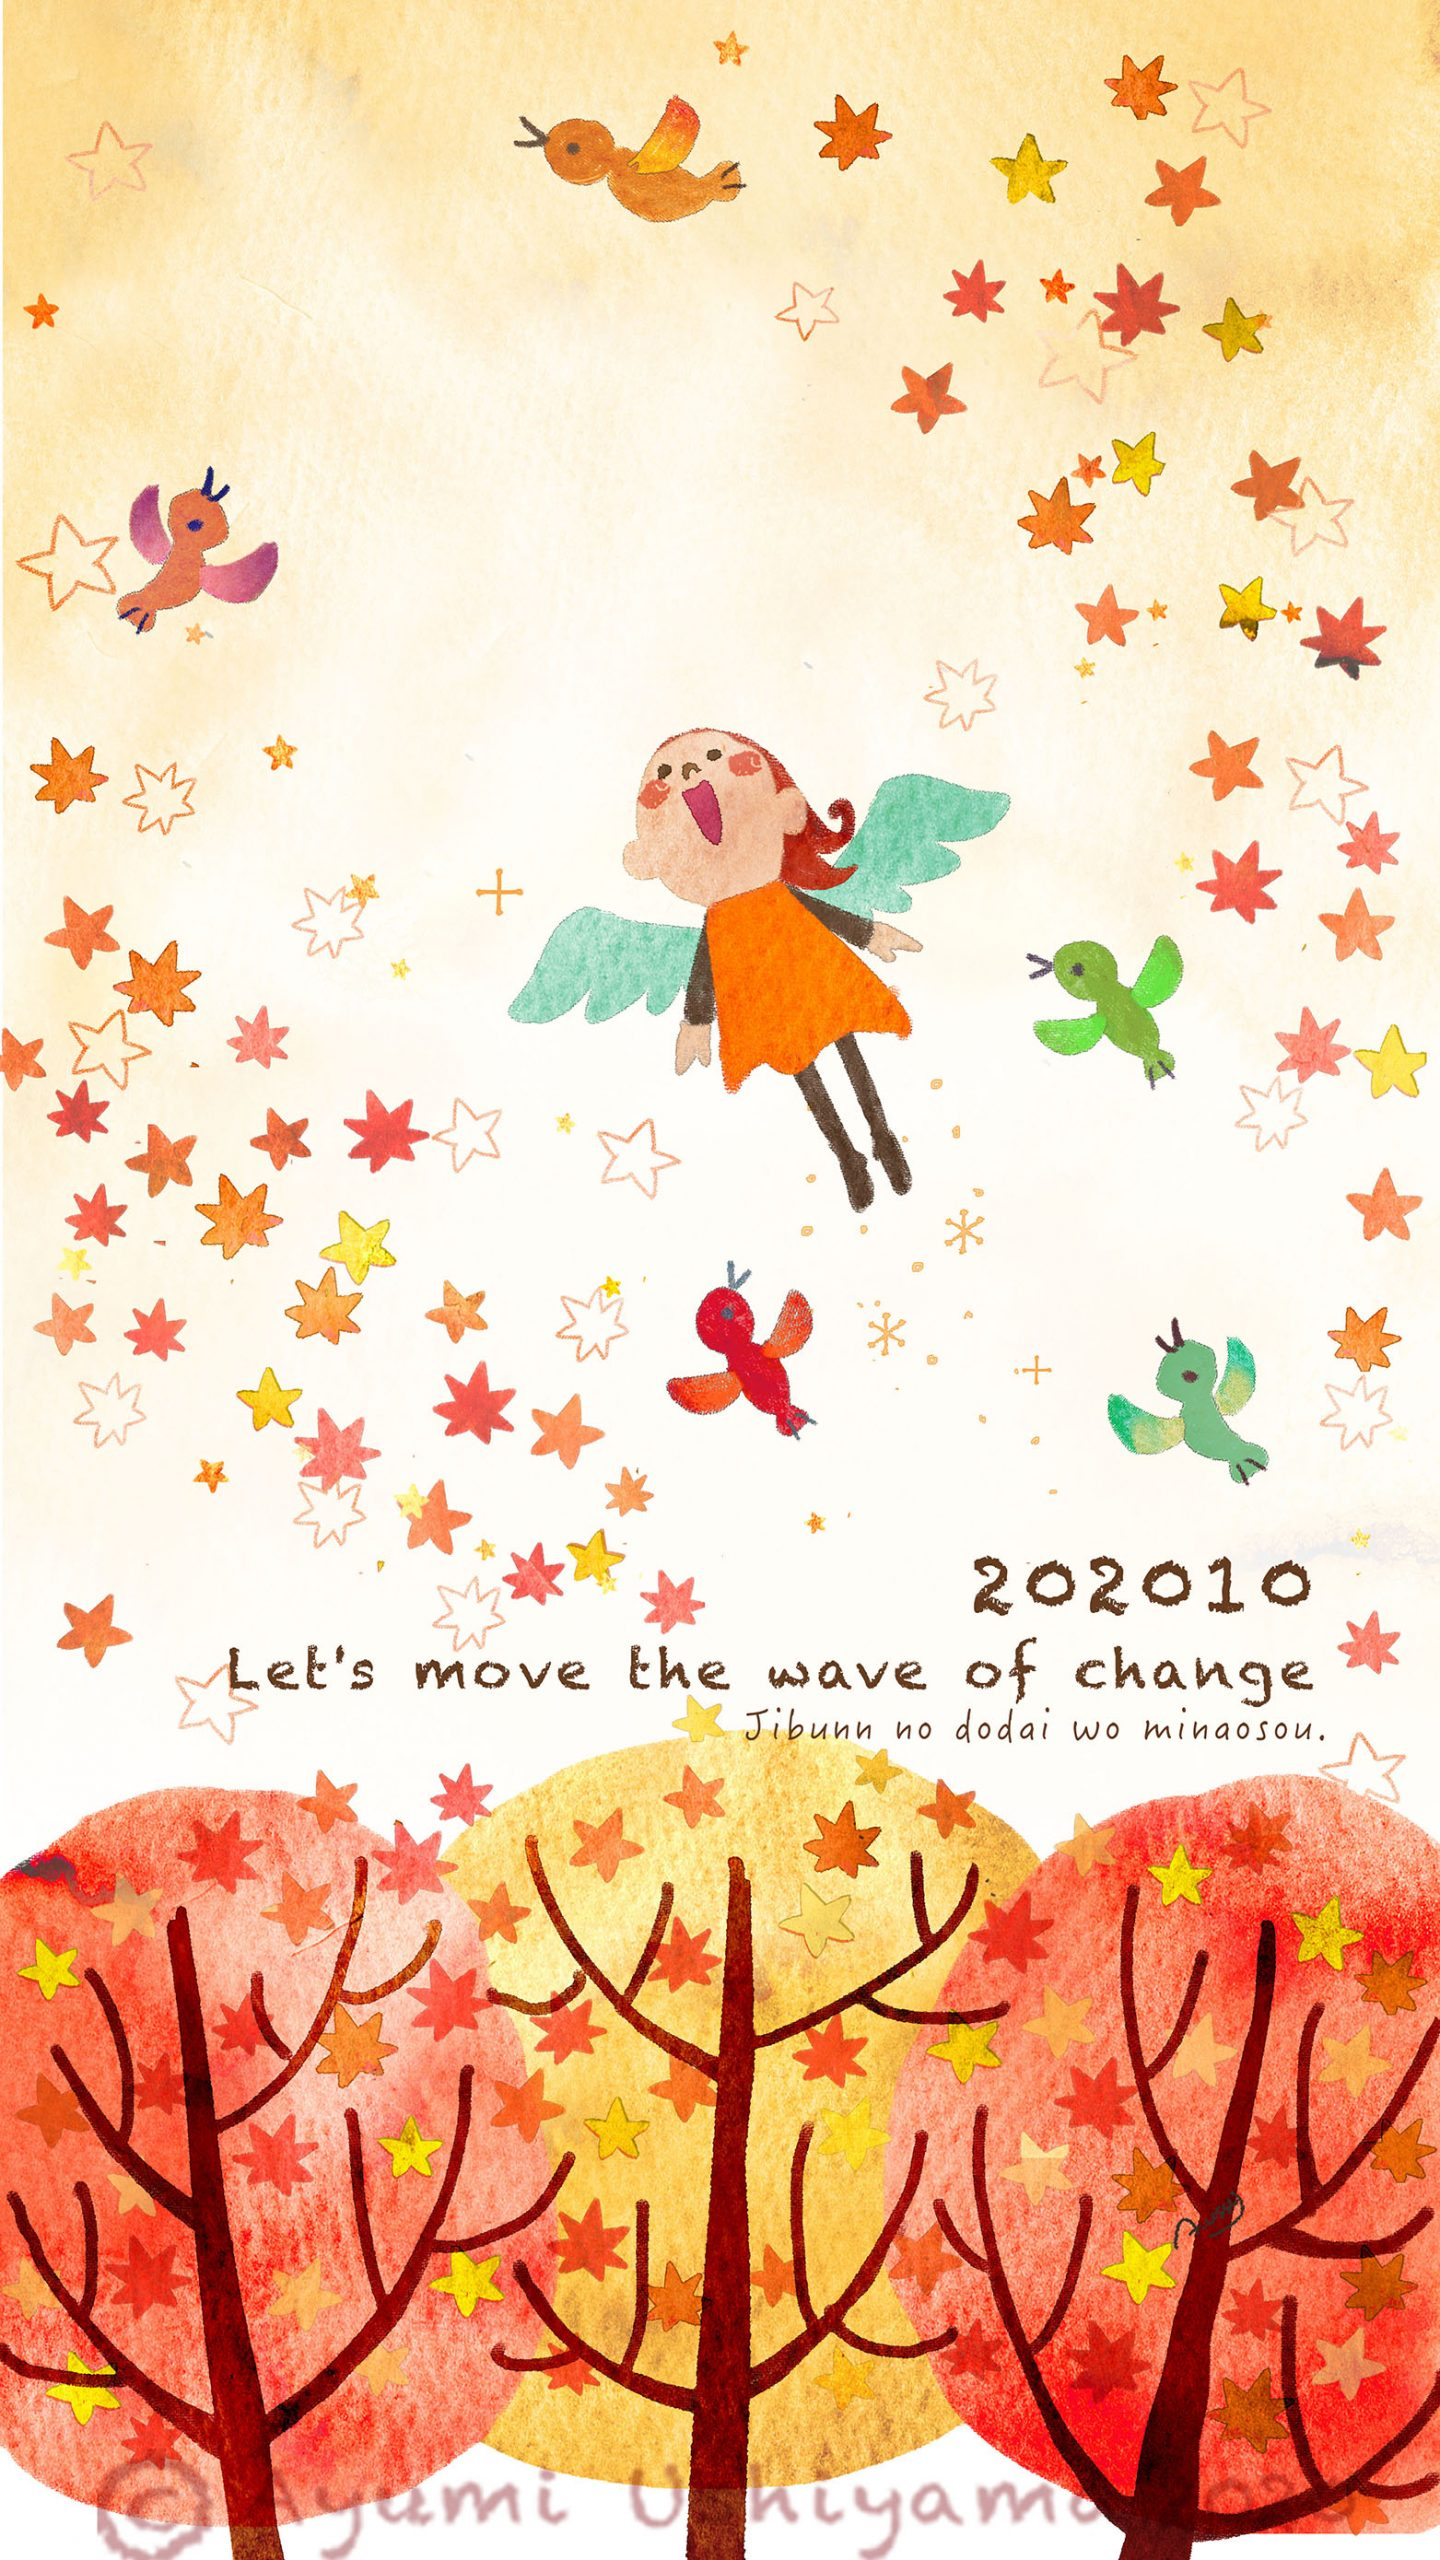 2020.10『Let's move the wave of change』ローマ字